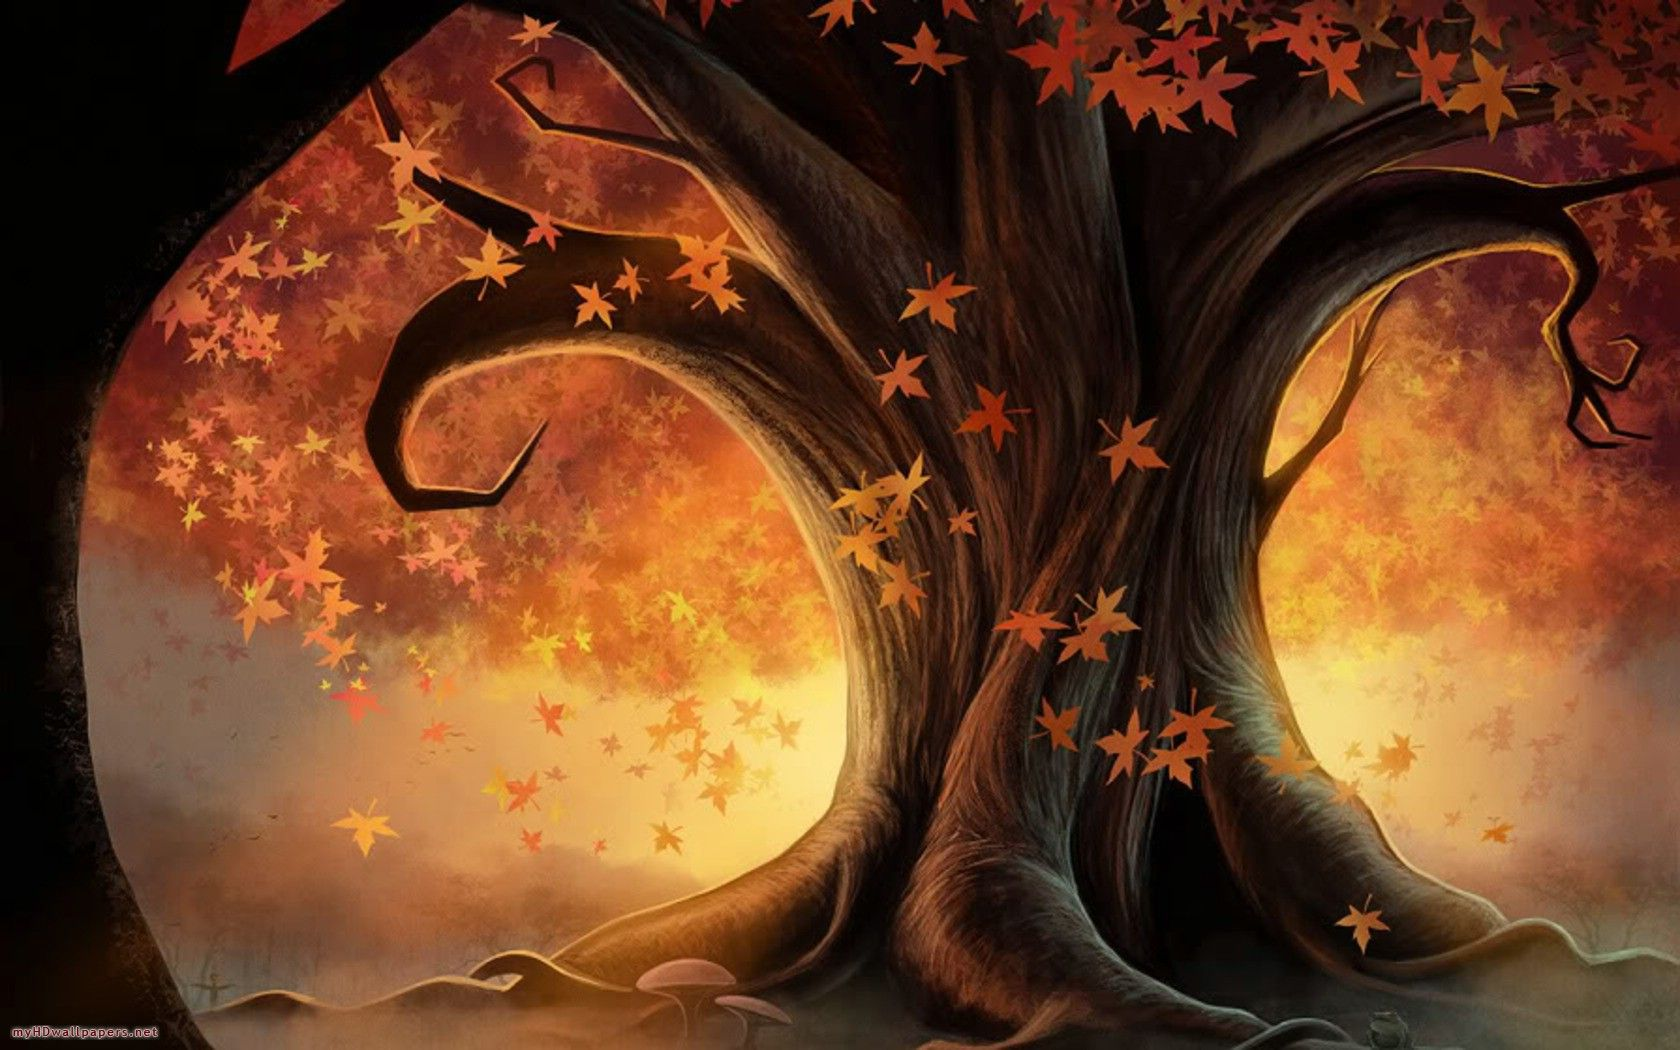 Cute Fall Wallpapers Fall Wallpaper Cute Fall Wallpaper Desktop Wallpaper Fall